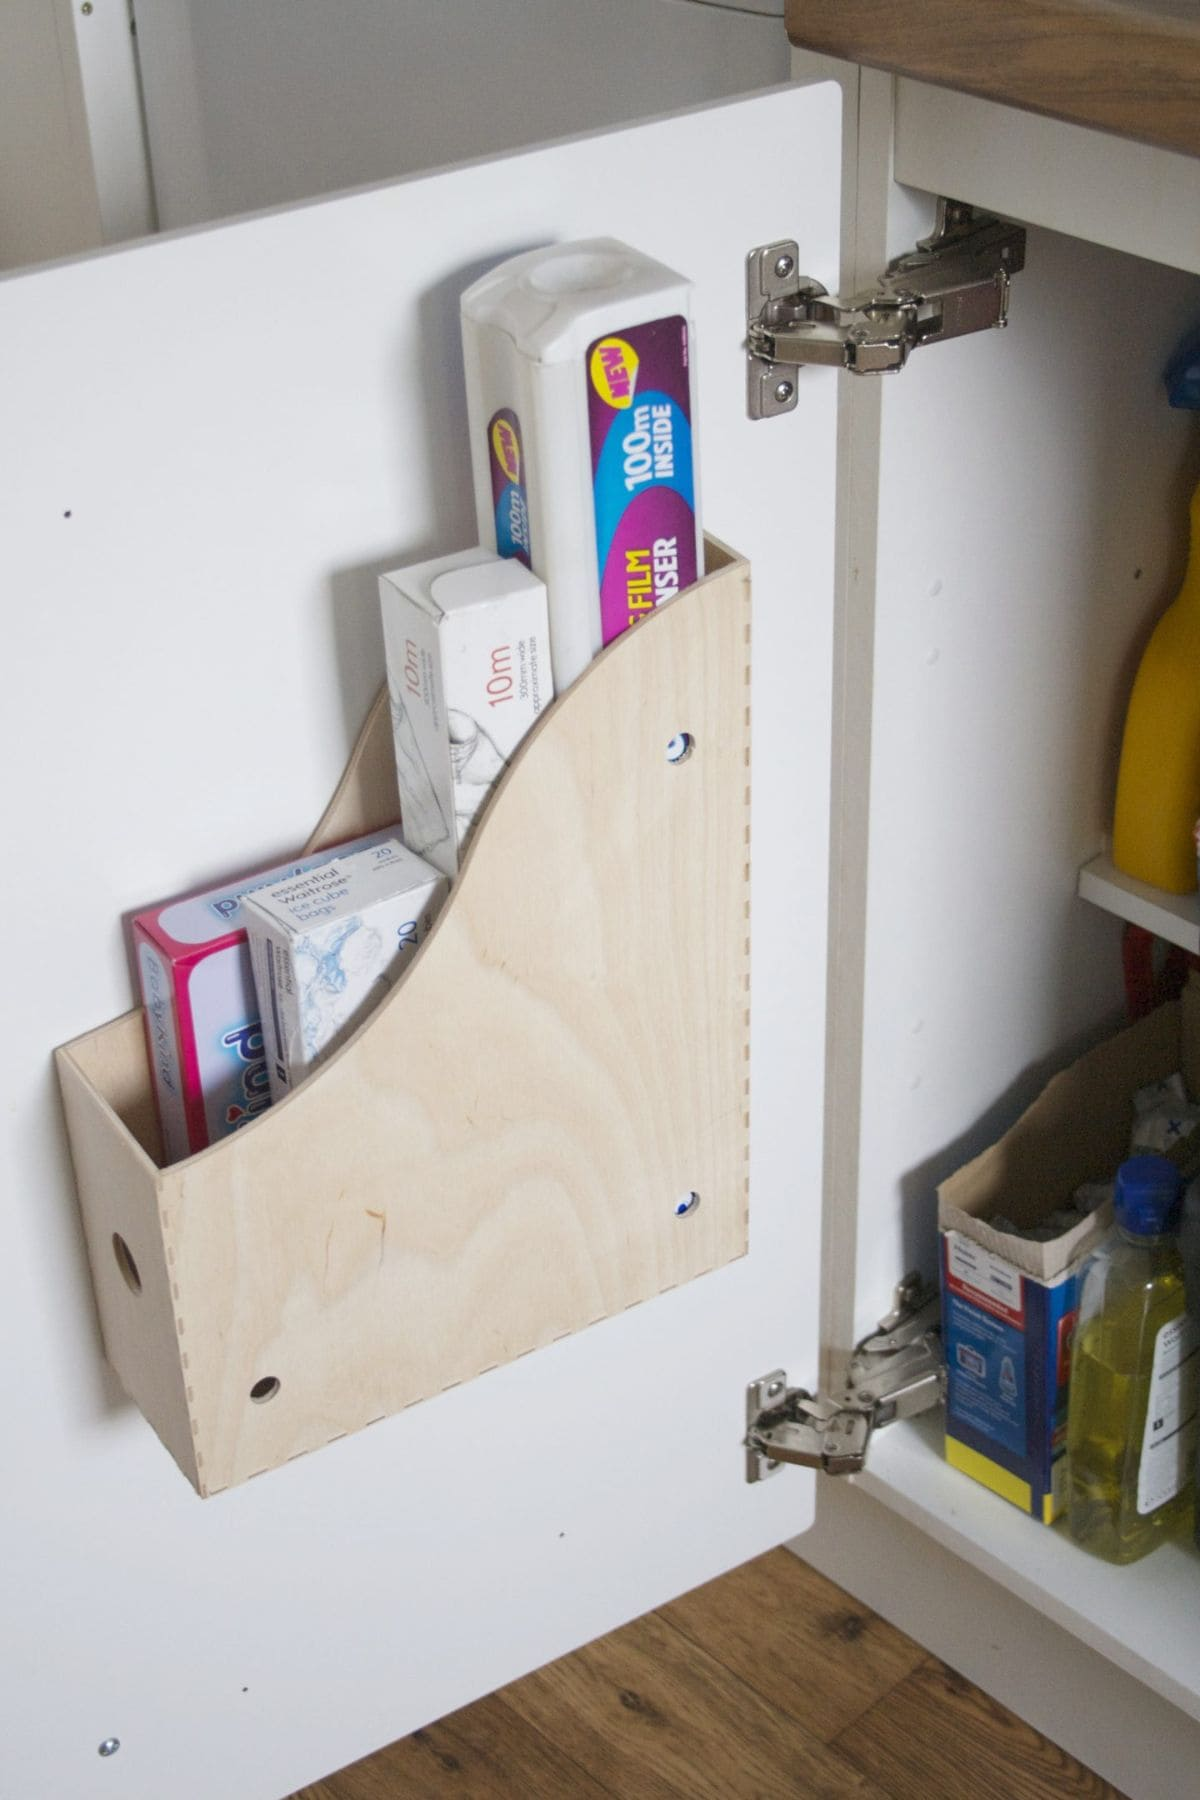 The inside of a kitchen cabinet is shown. On the door a wooden magazine rack has been fixed and rolls of cling film and foil put inside